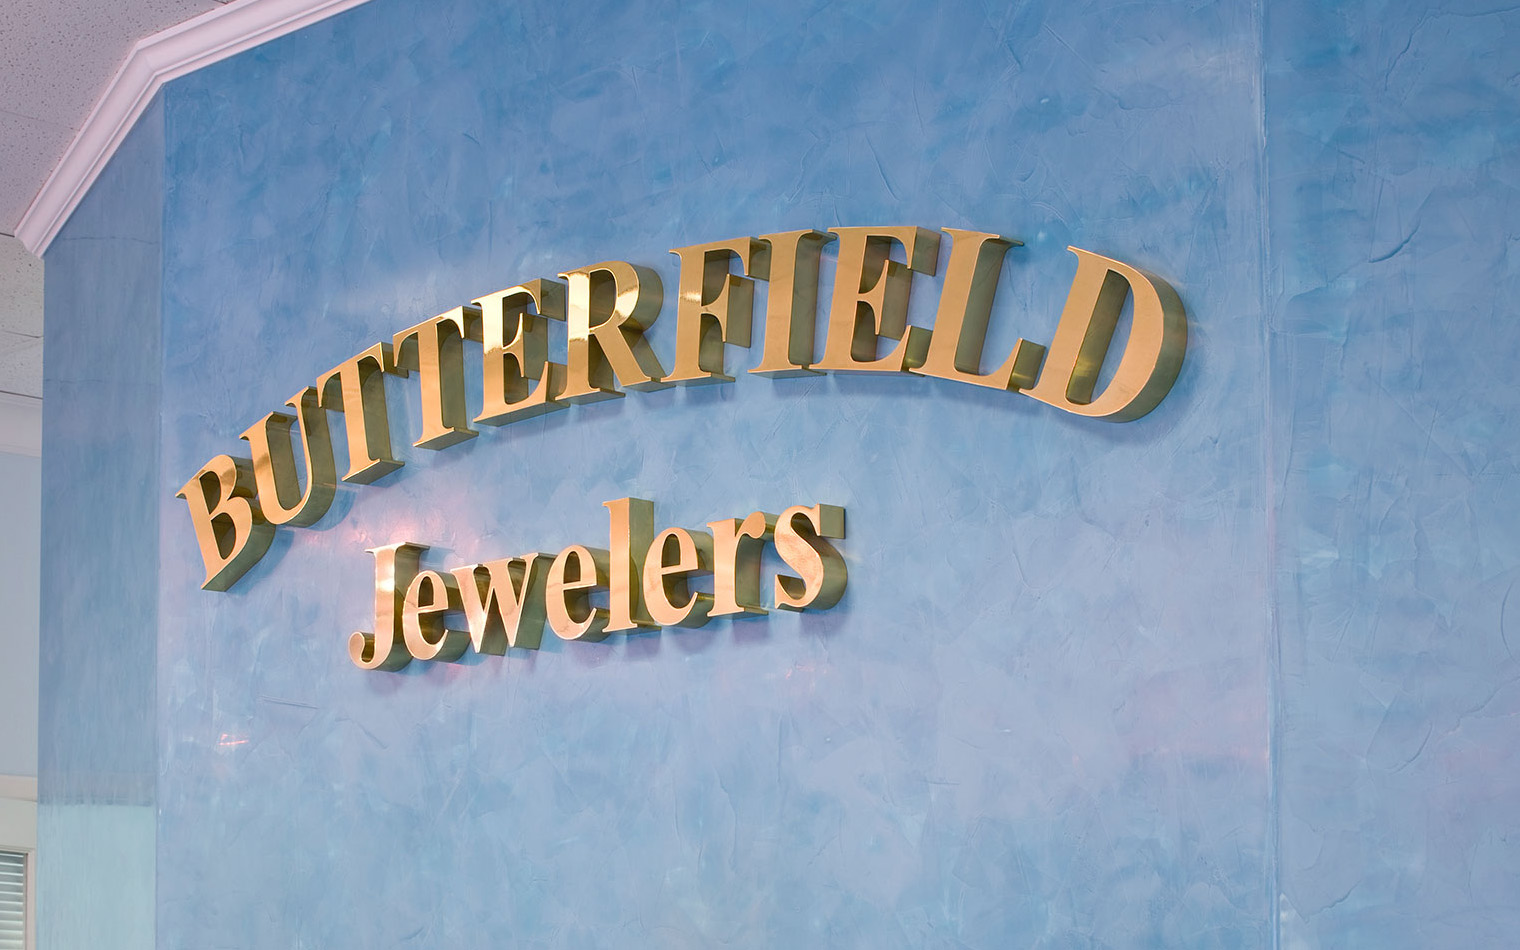 Butterfield Jewelers - Reverse Channel